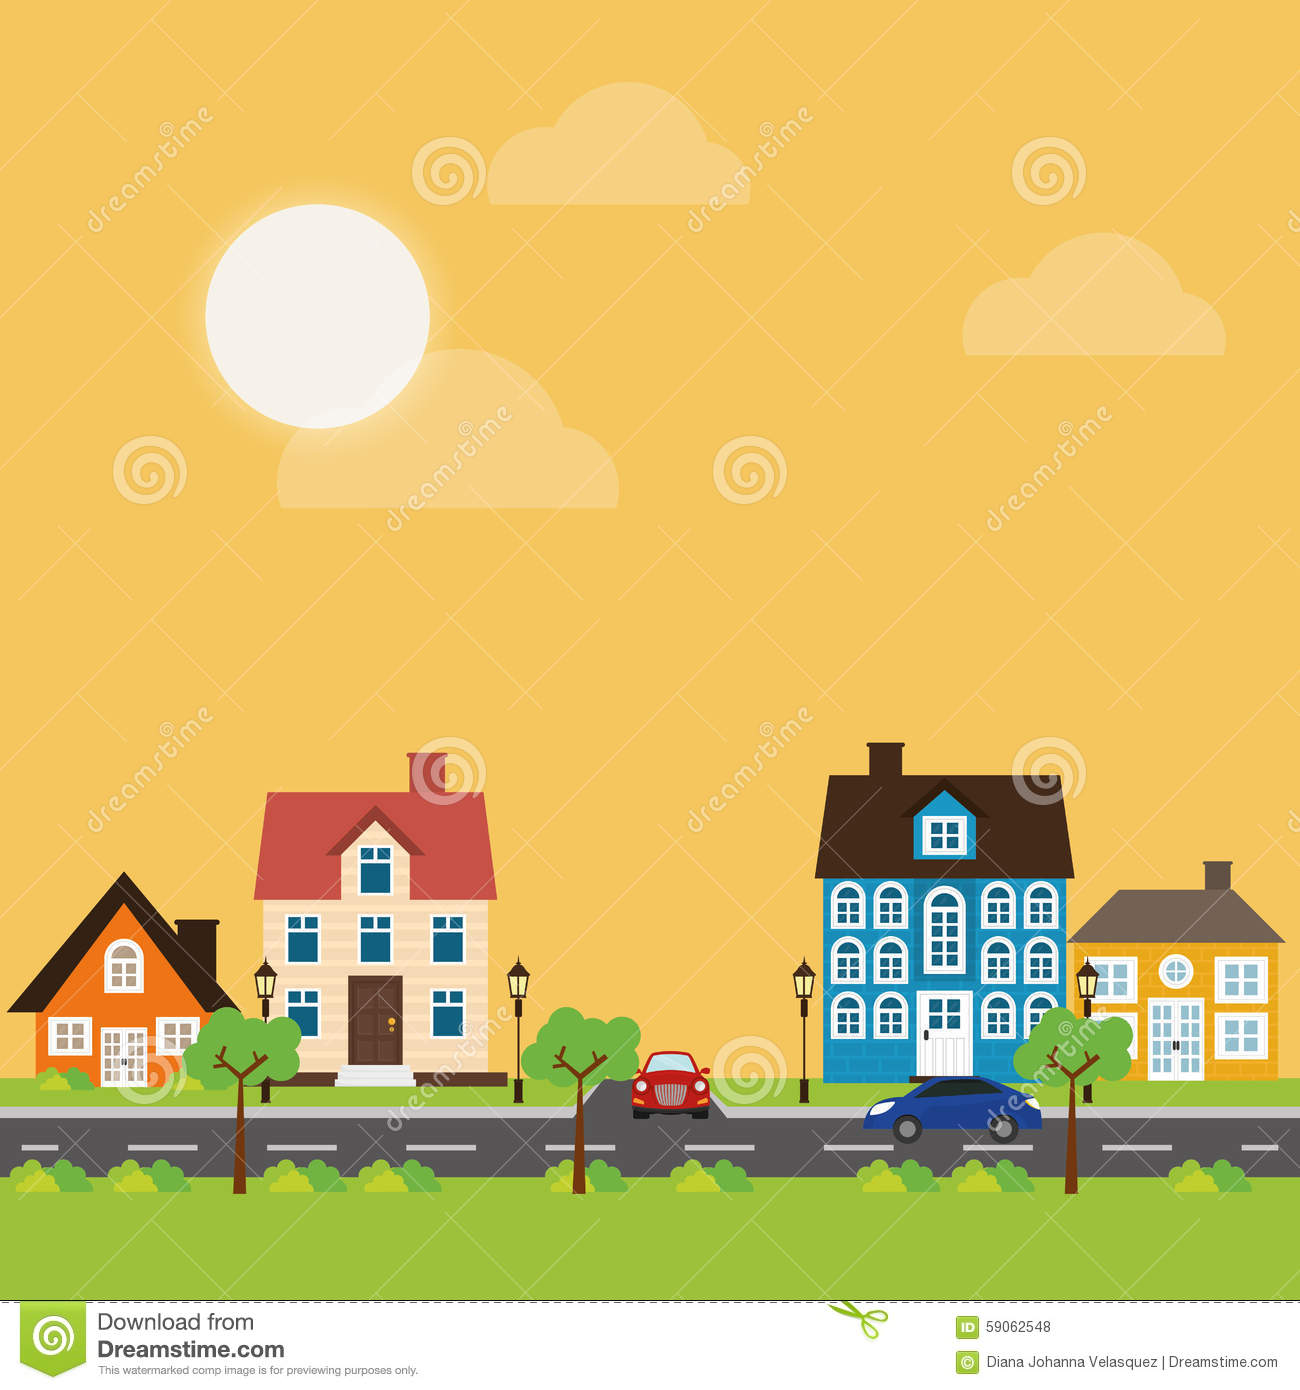 House design stock vector image 59062548 for Digital house design